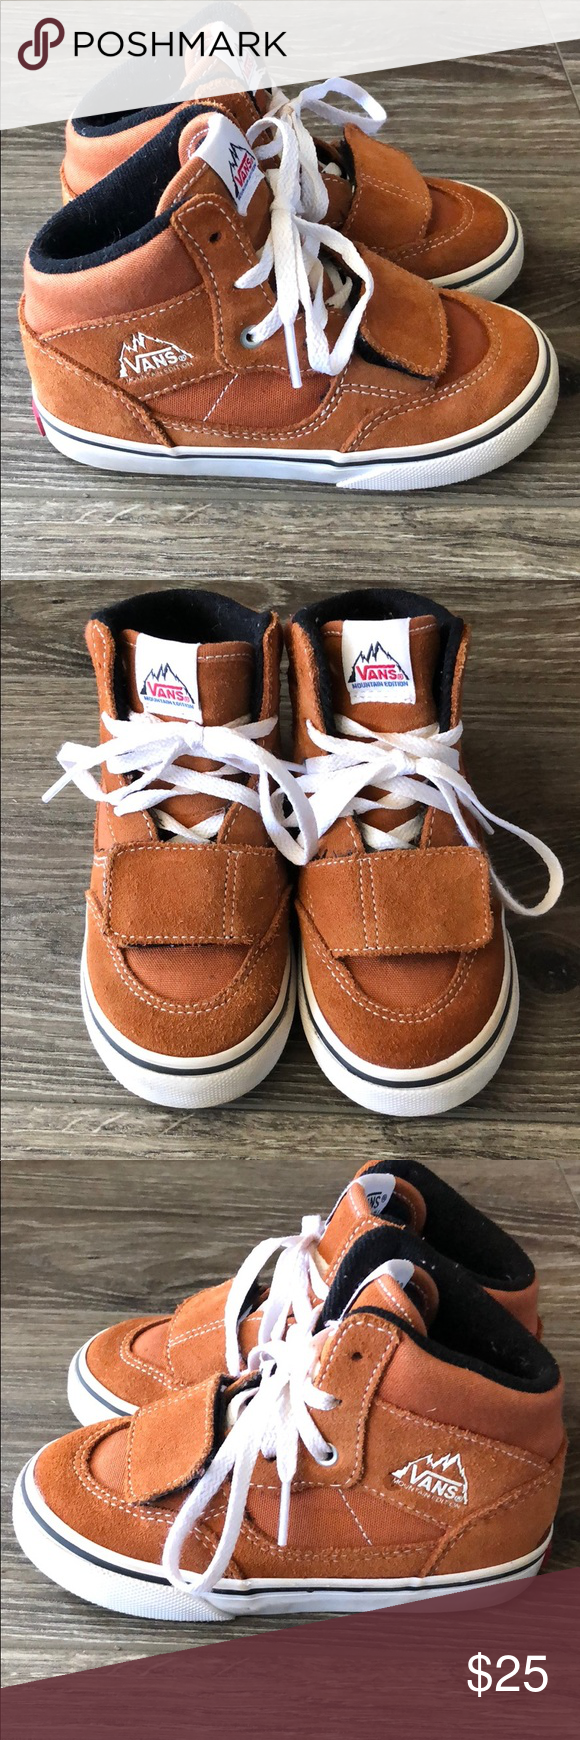 e161a8a89a Material Canvas and Suede. Featuring small Velcro strap across toe. Ships  ASAP. Vans Shoes Sneakers. Toddler Vans Mountain Edition in Glazed Ginger  ...